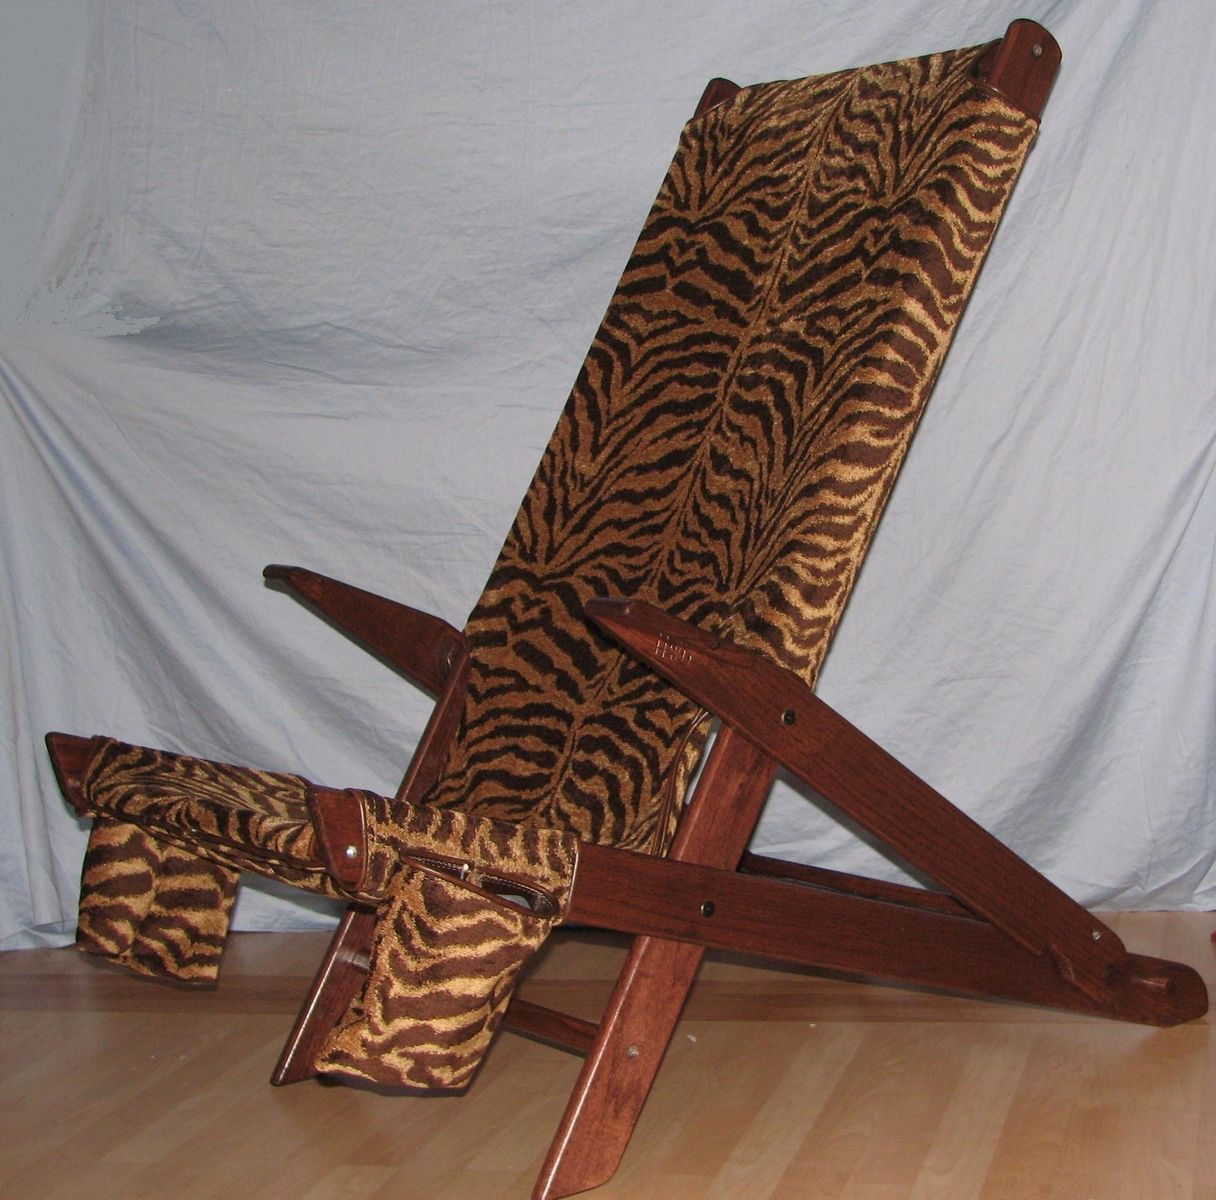 tiger print chair revolving pose hand made by heytens wood design inc